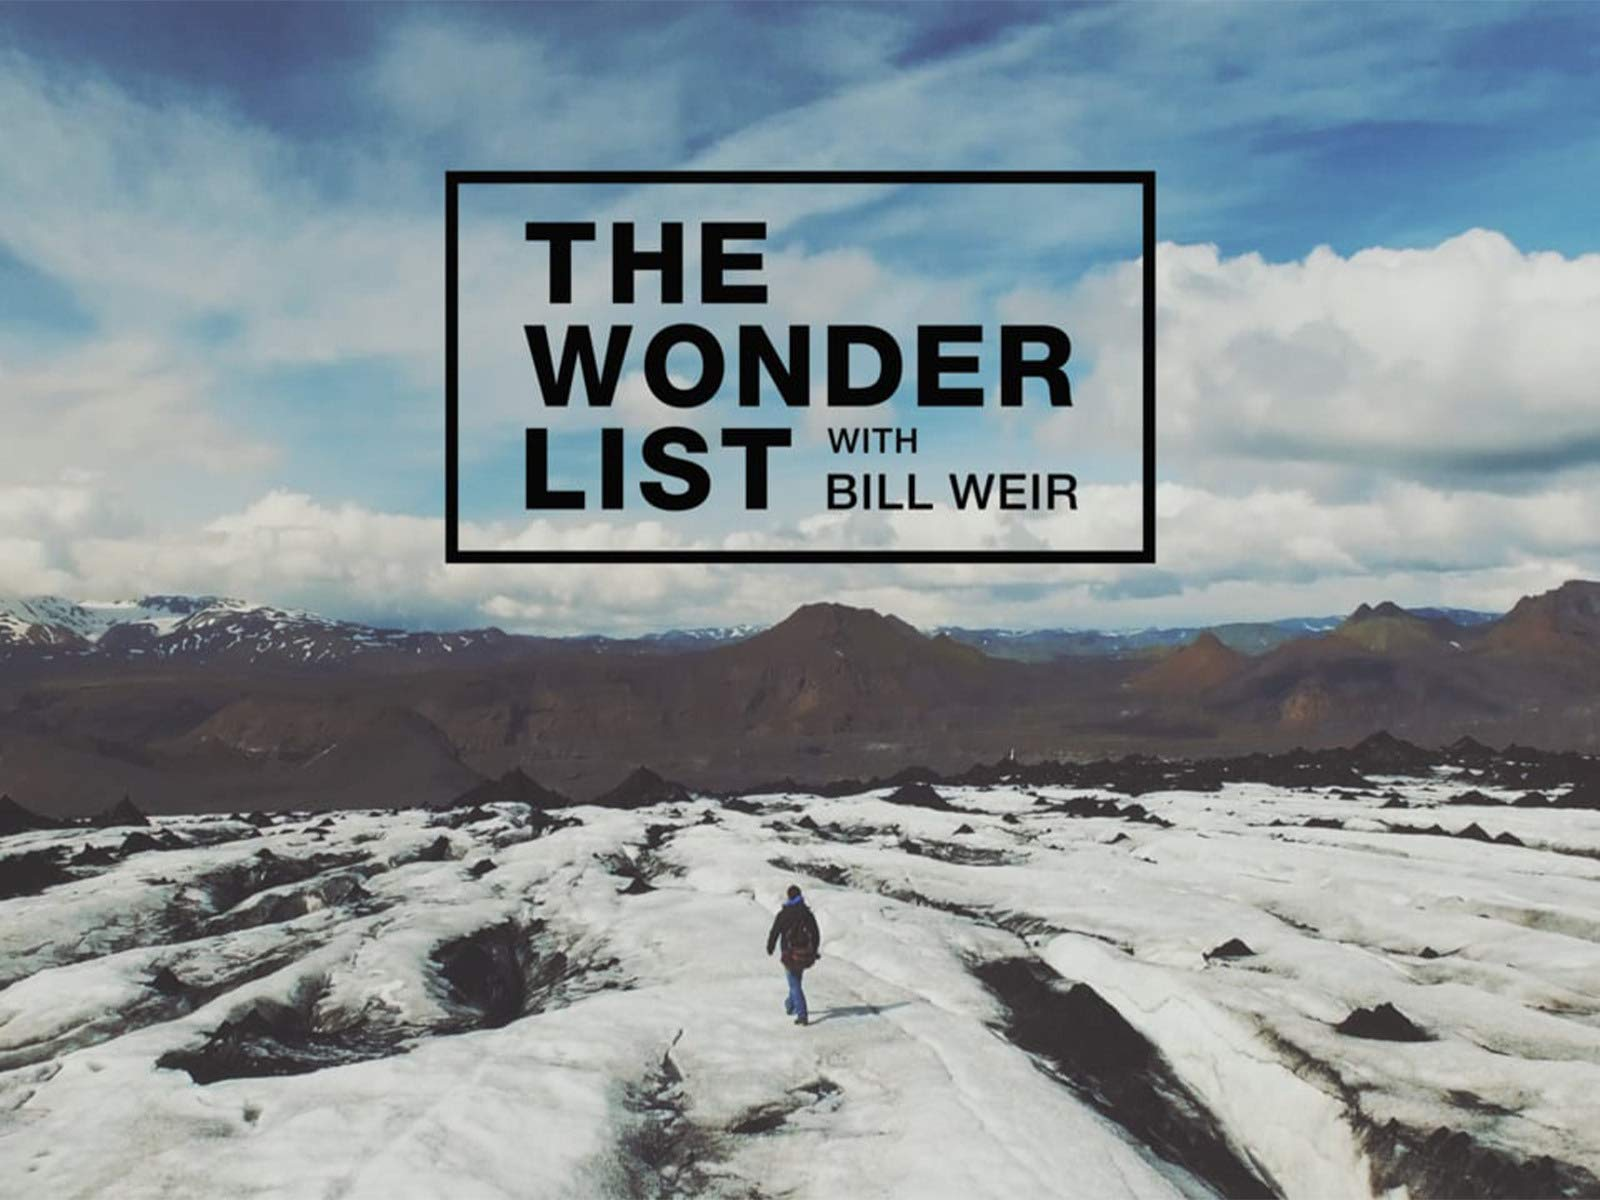 The Wonder List with Bill Weir on Amazon Prime Video UK